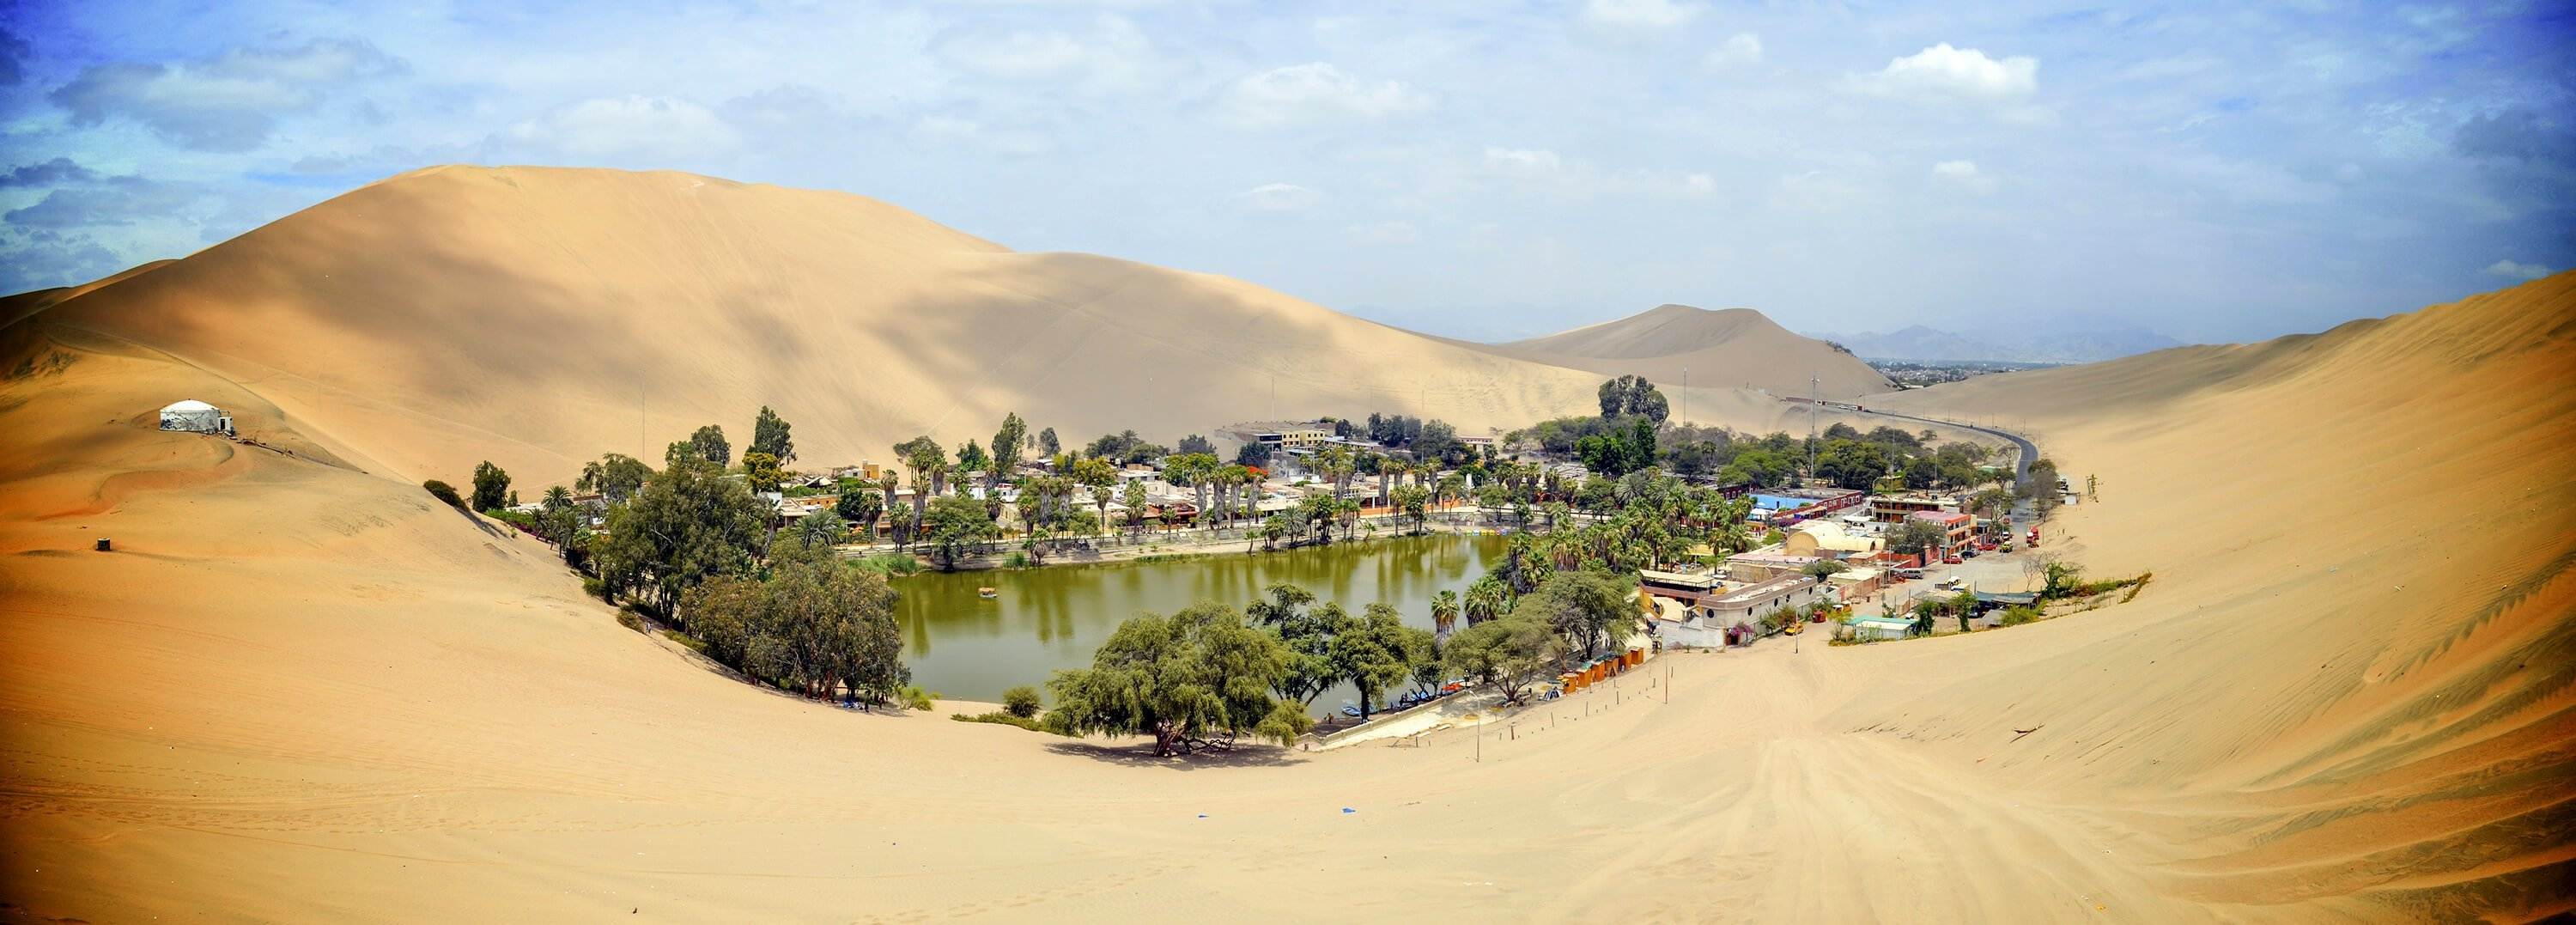 Huacachina in Peru is a beautiful oasis among the sand dunes